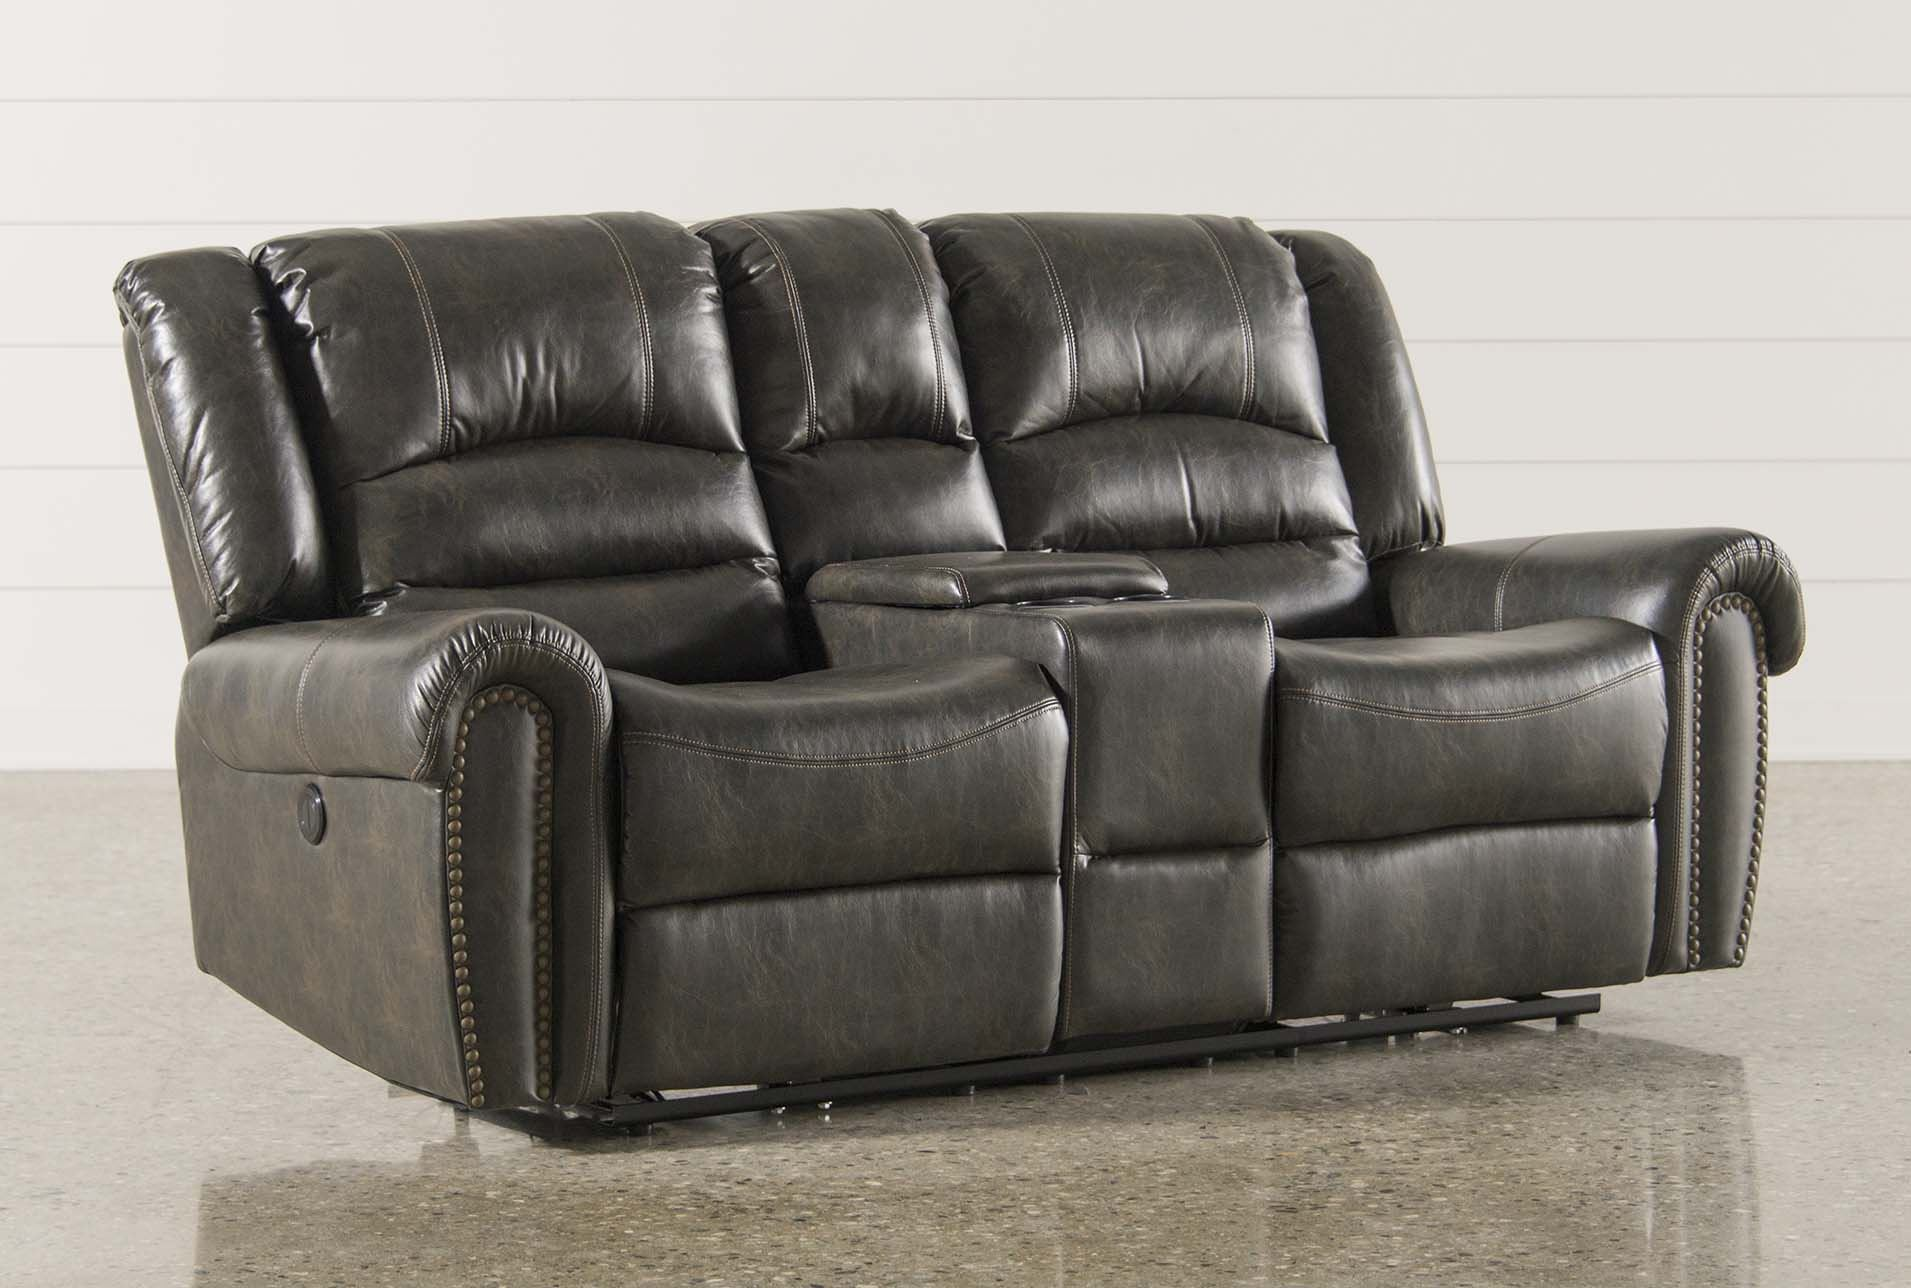 Goodwin power reclining loveseat w console living spaces Reclining loveseat with center console